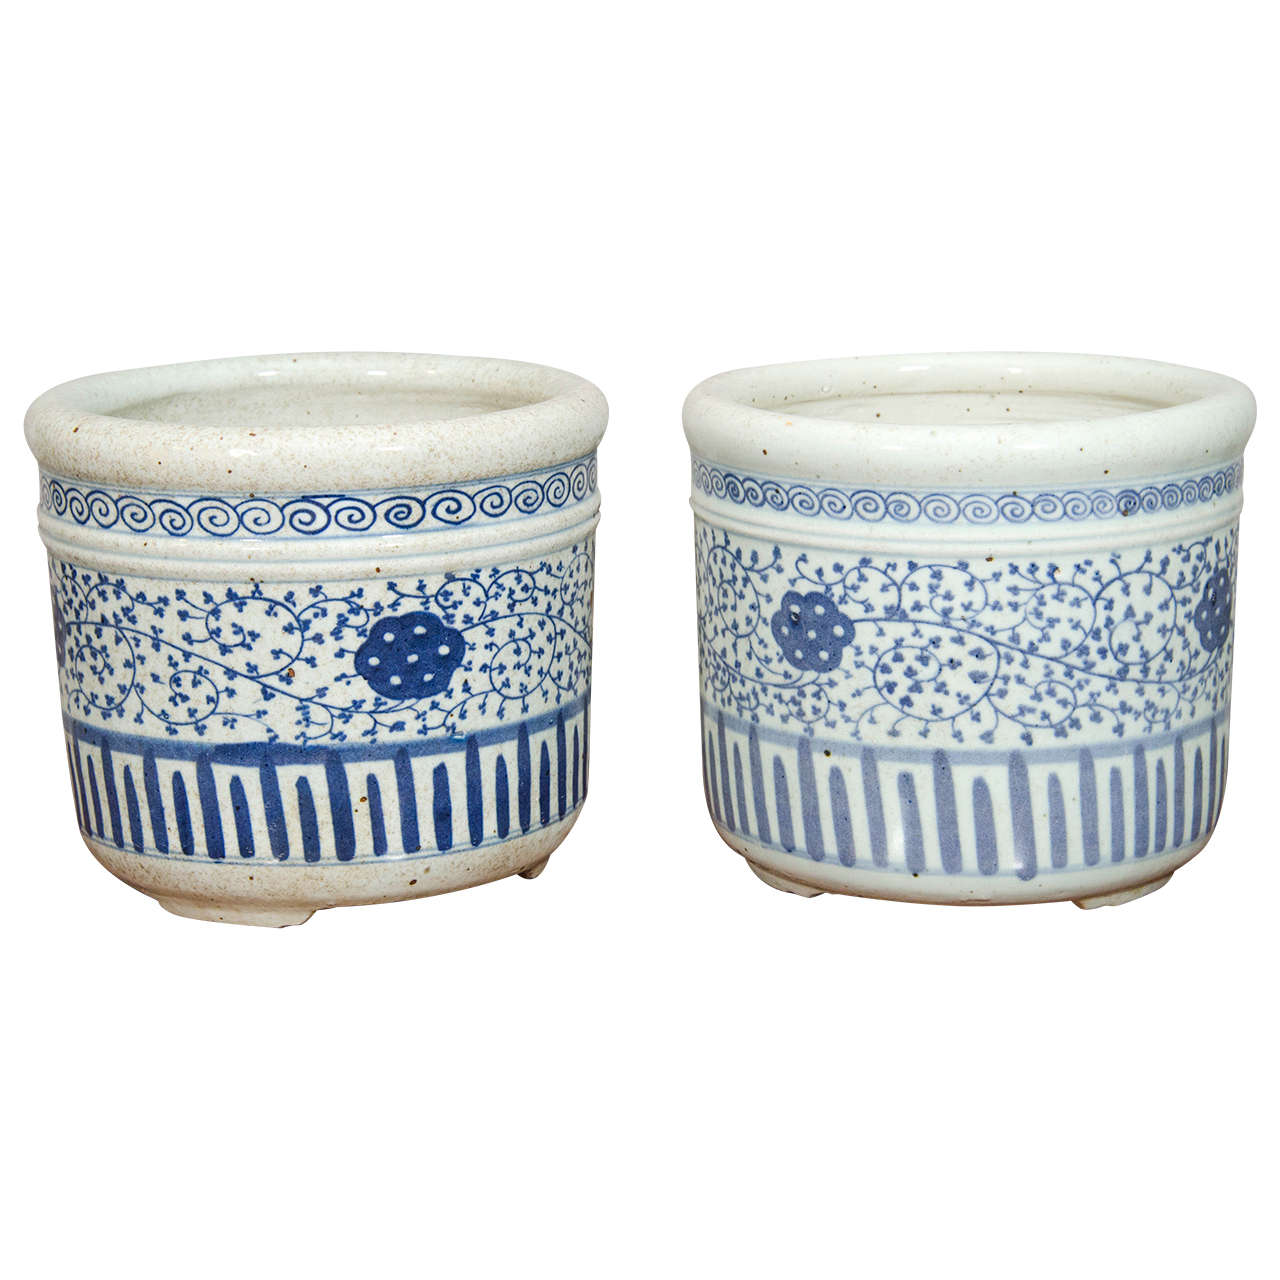 Pair Of Blue And White Porcelain Pots For